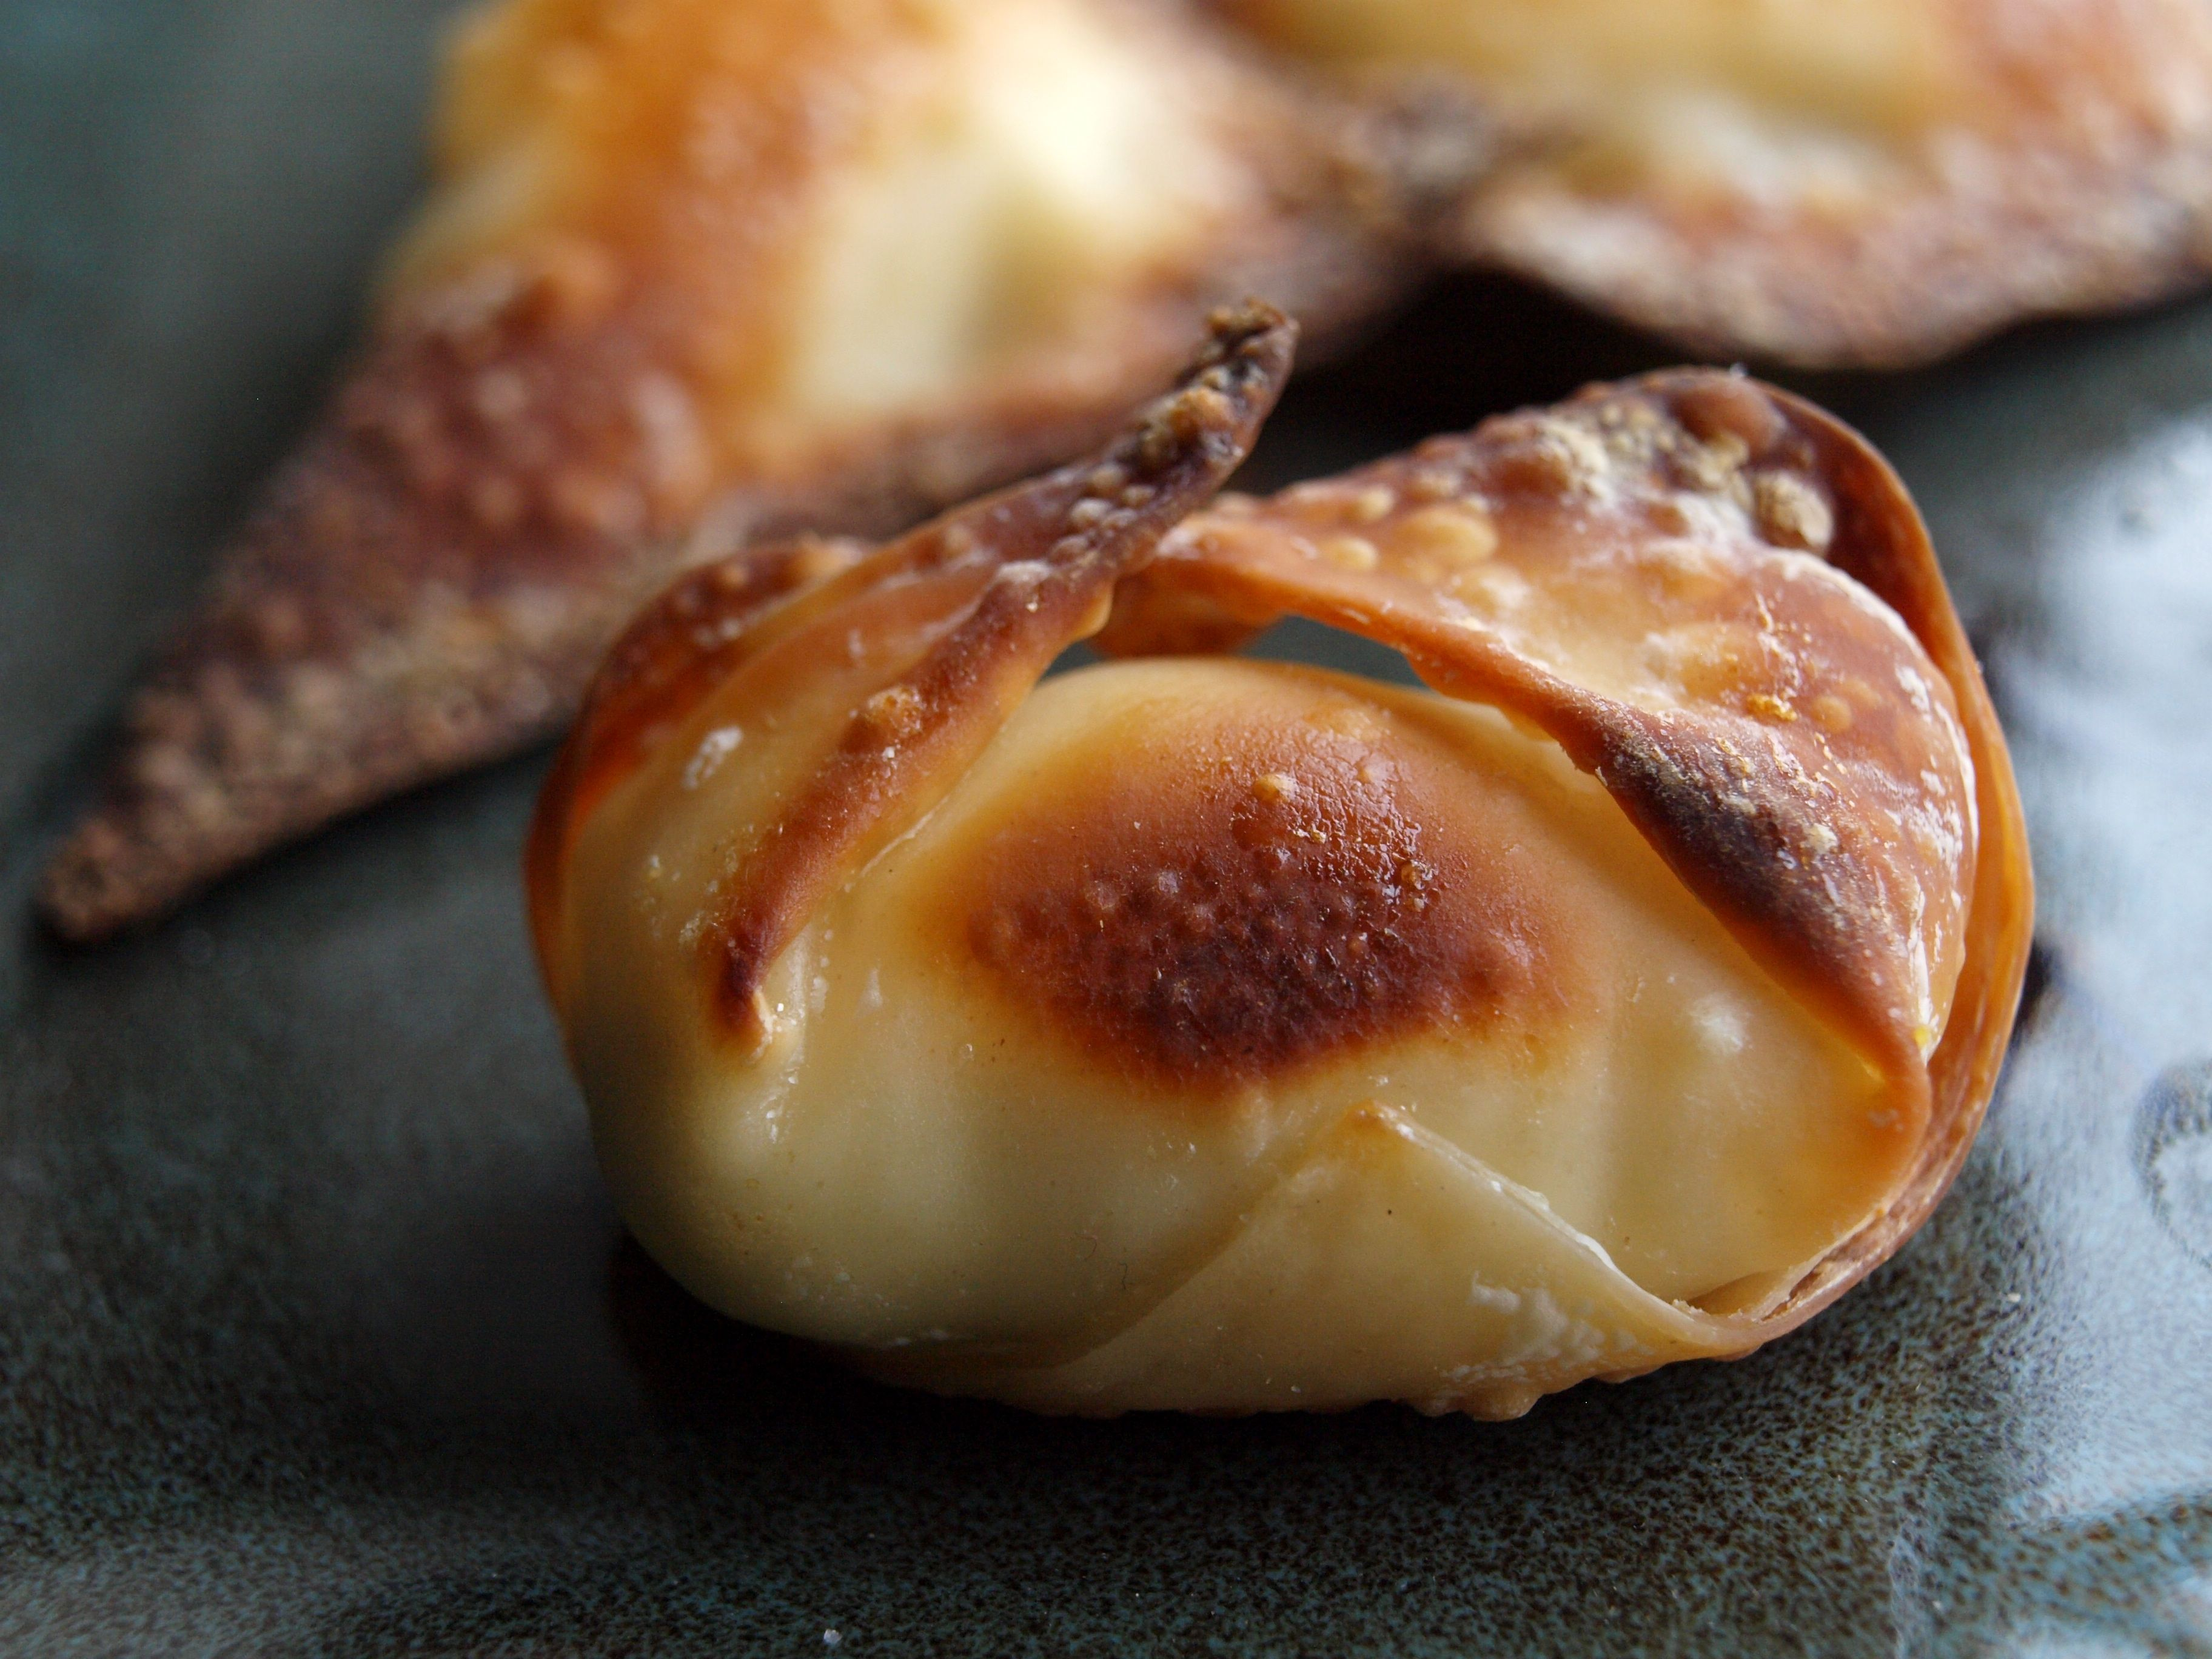 Baked Cream Cheese Jalapeno Wonton